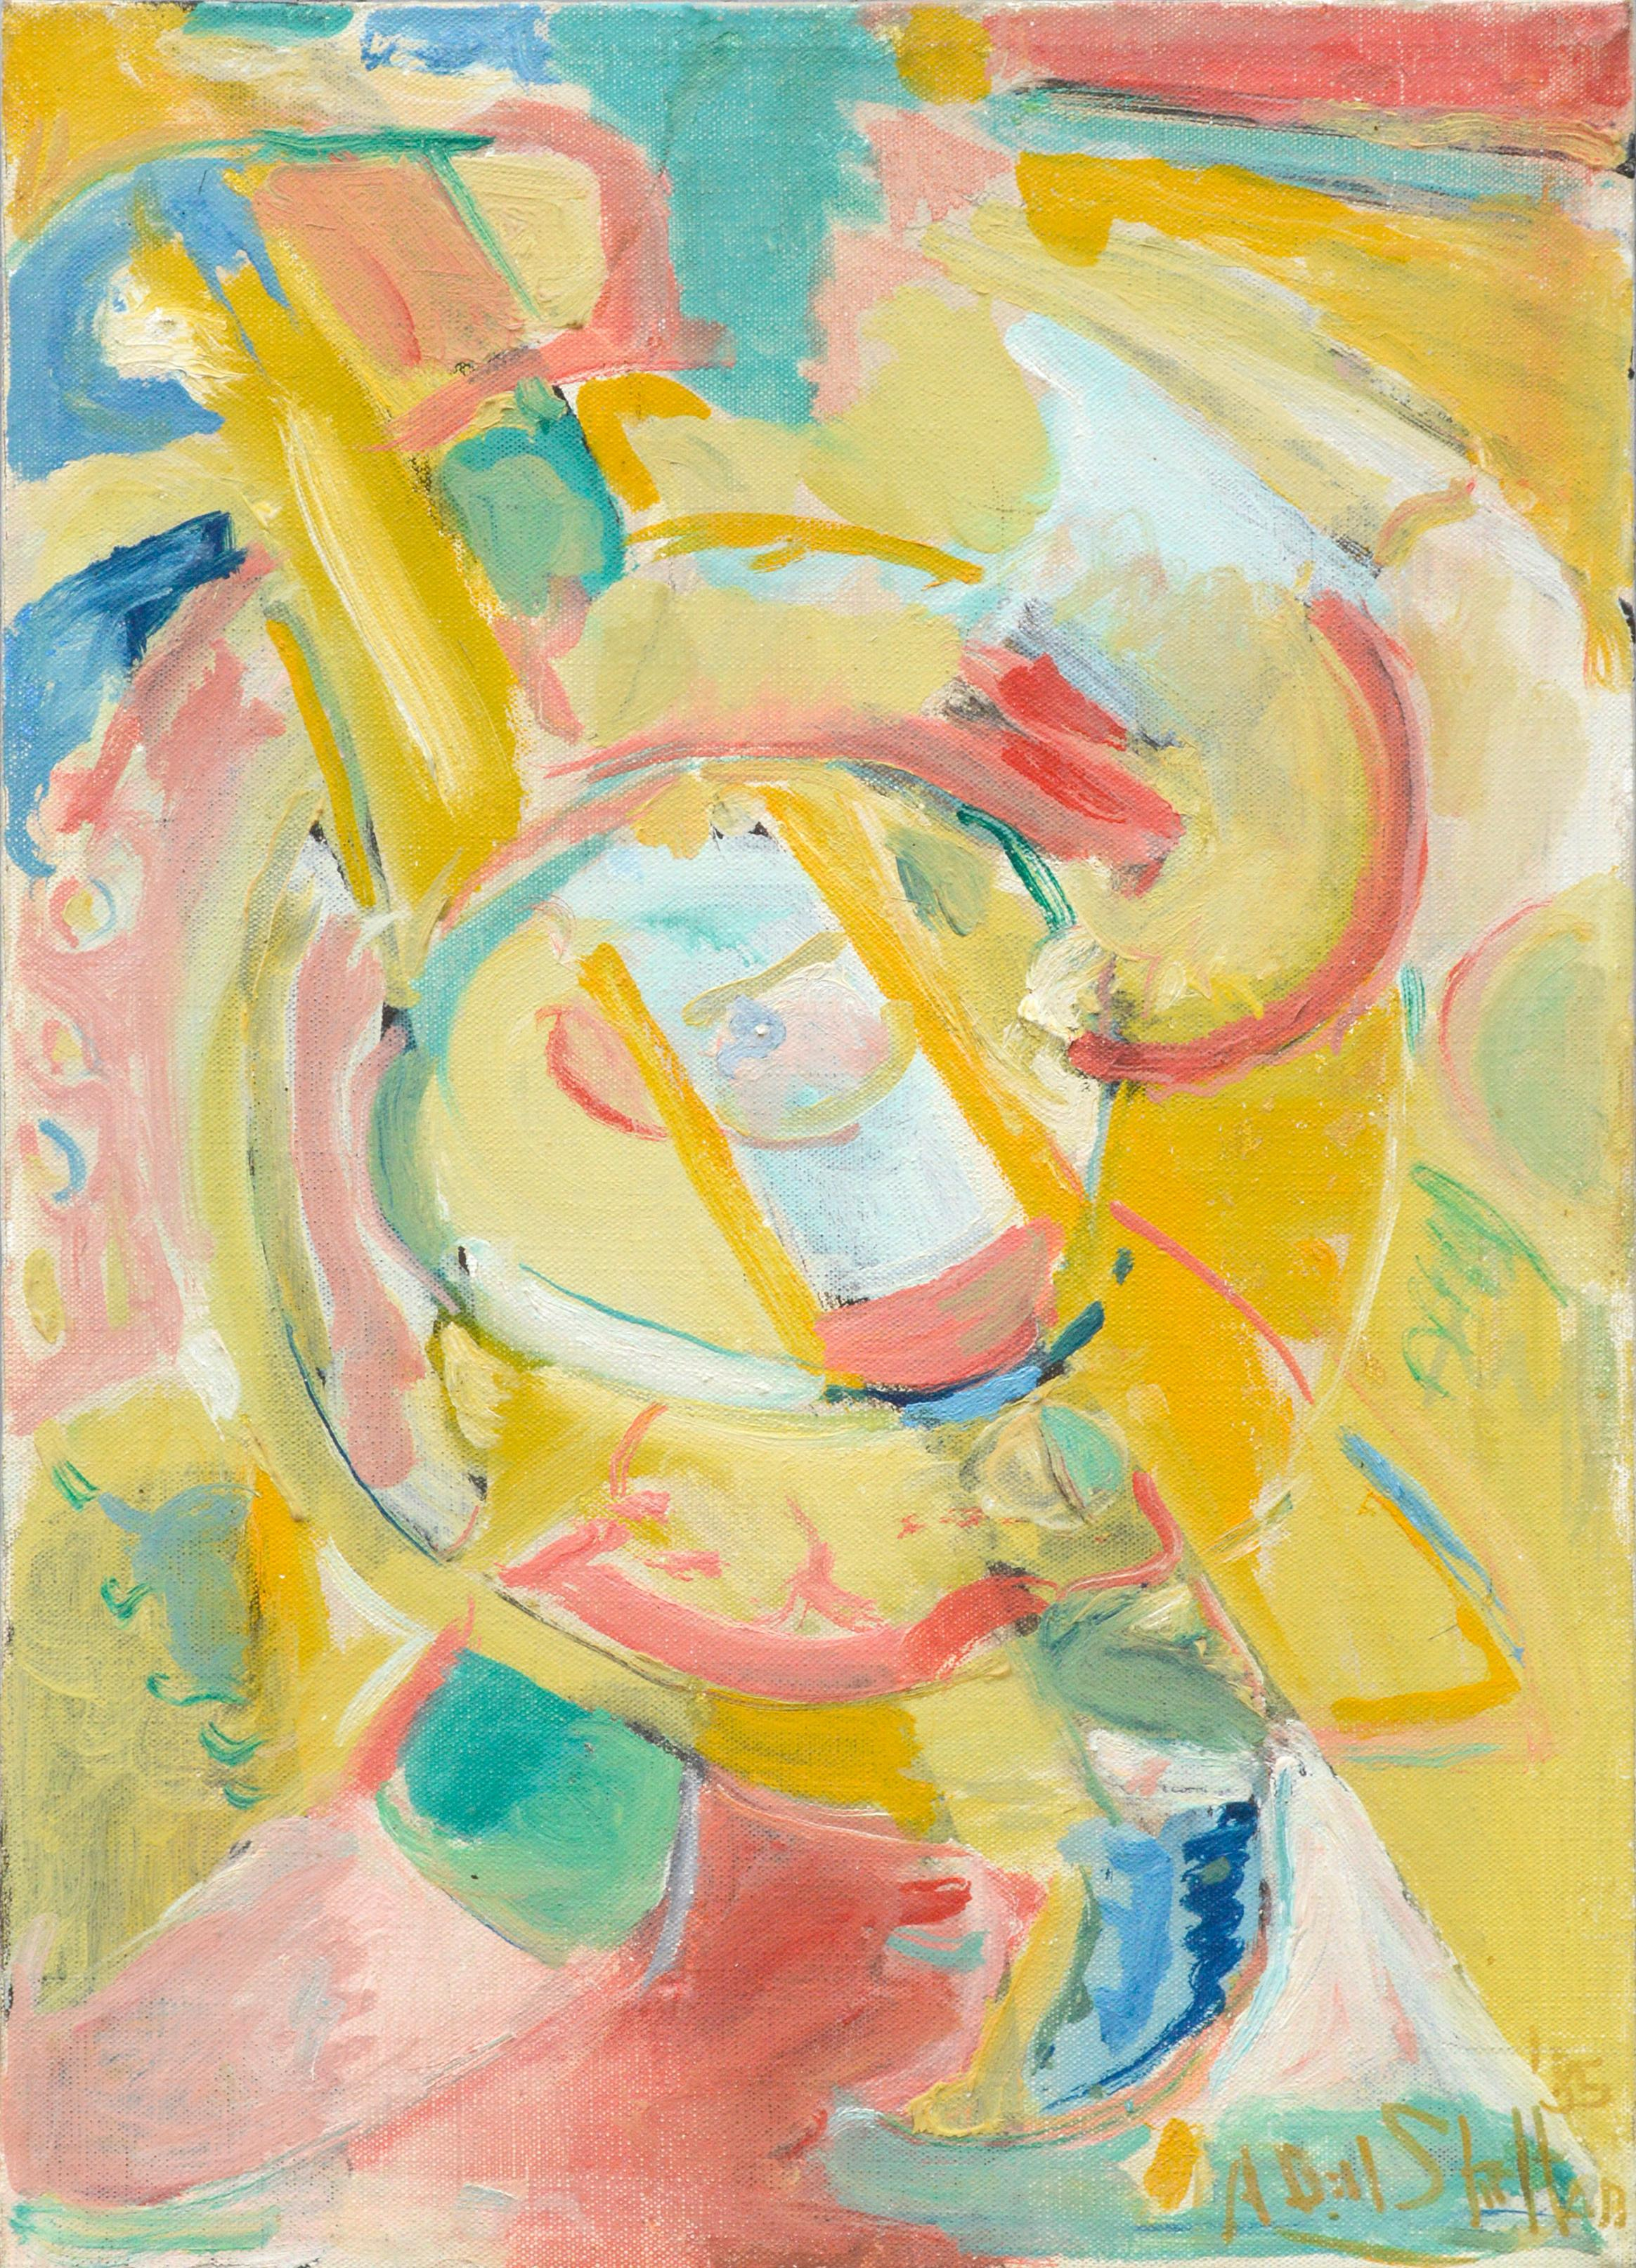 Carnival Abstract Expressionist Composition